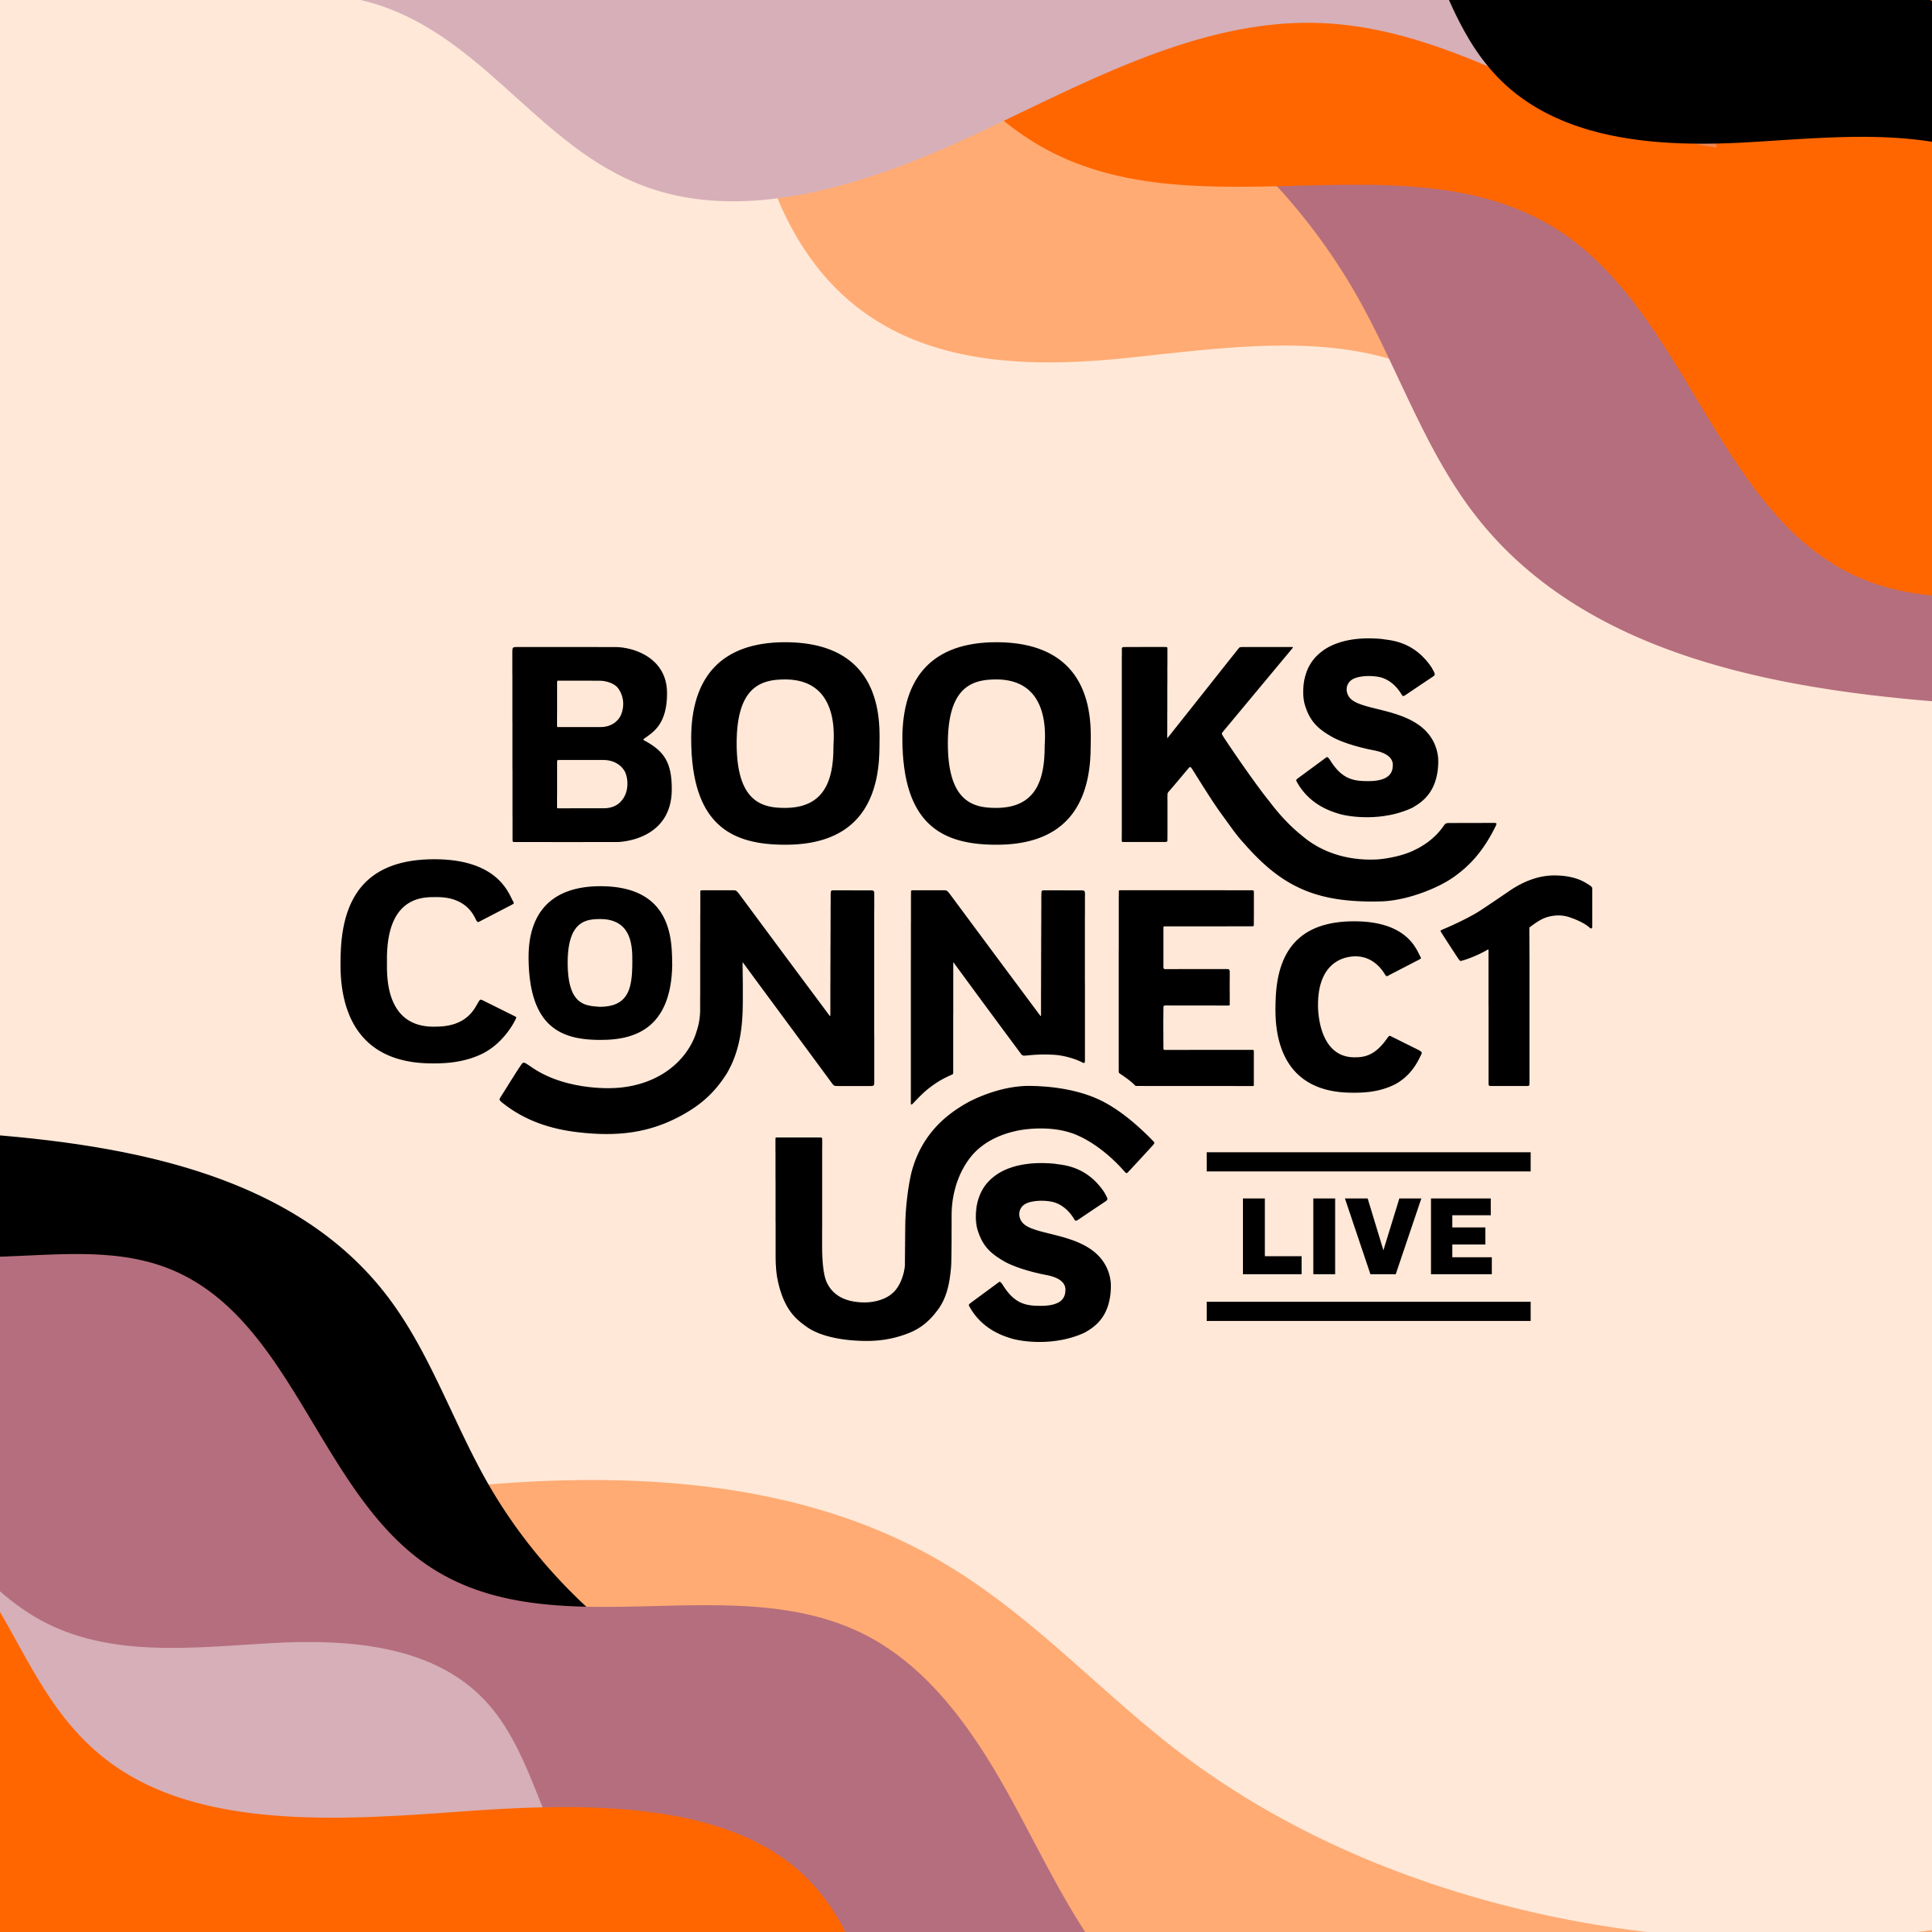 Books Connect Us Live 3/30-4/5